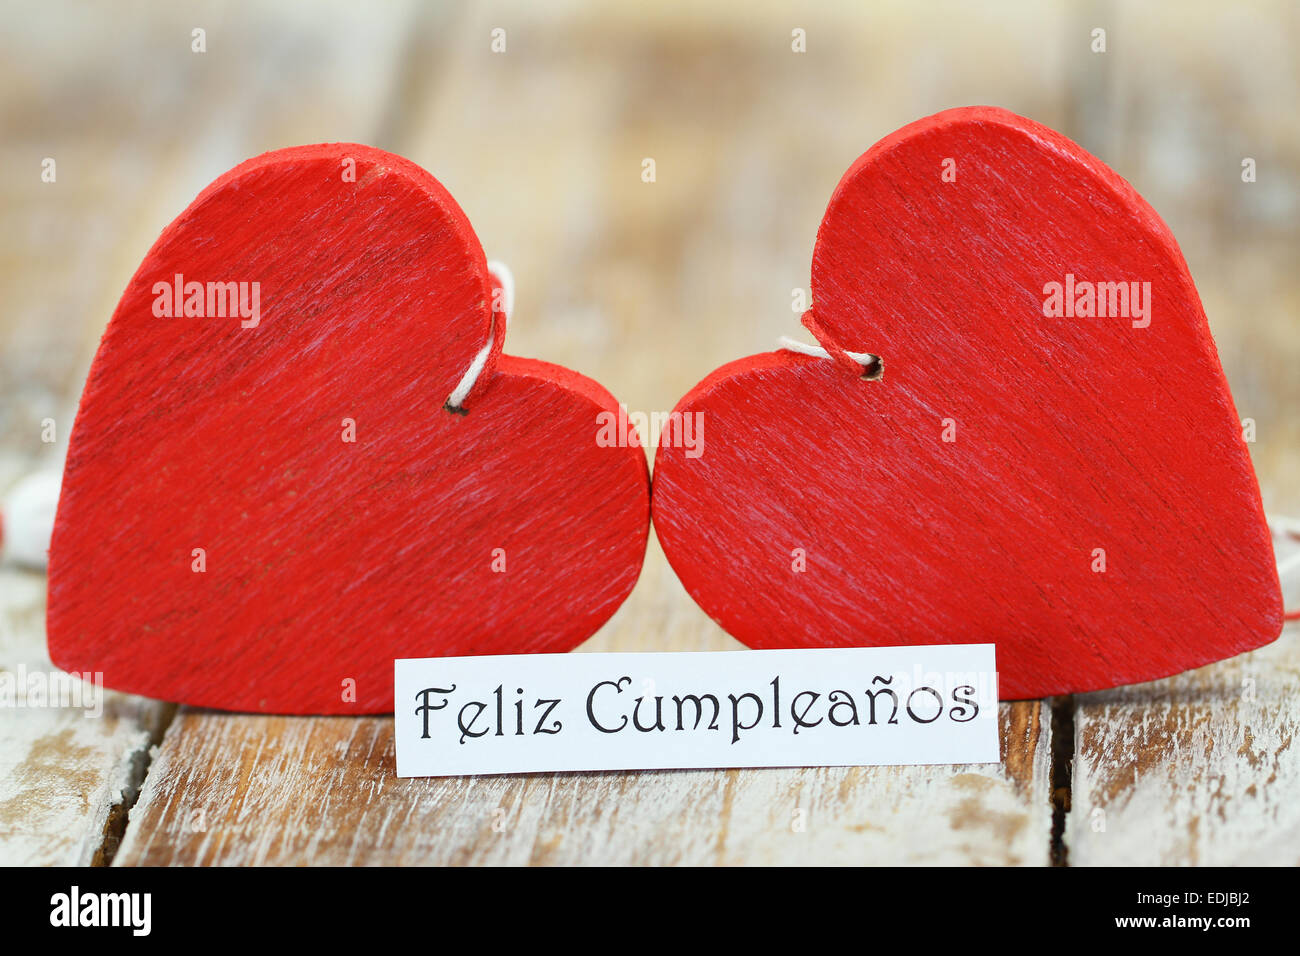 Feliz Cumpleanos Which Means Happy Birthday In Spanish With Two